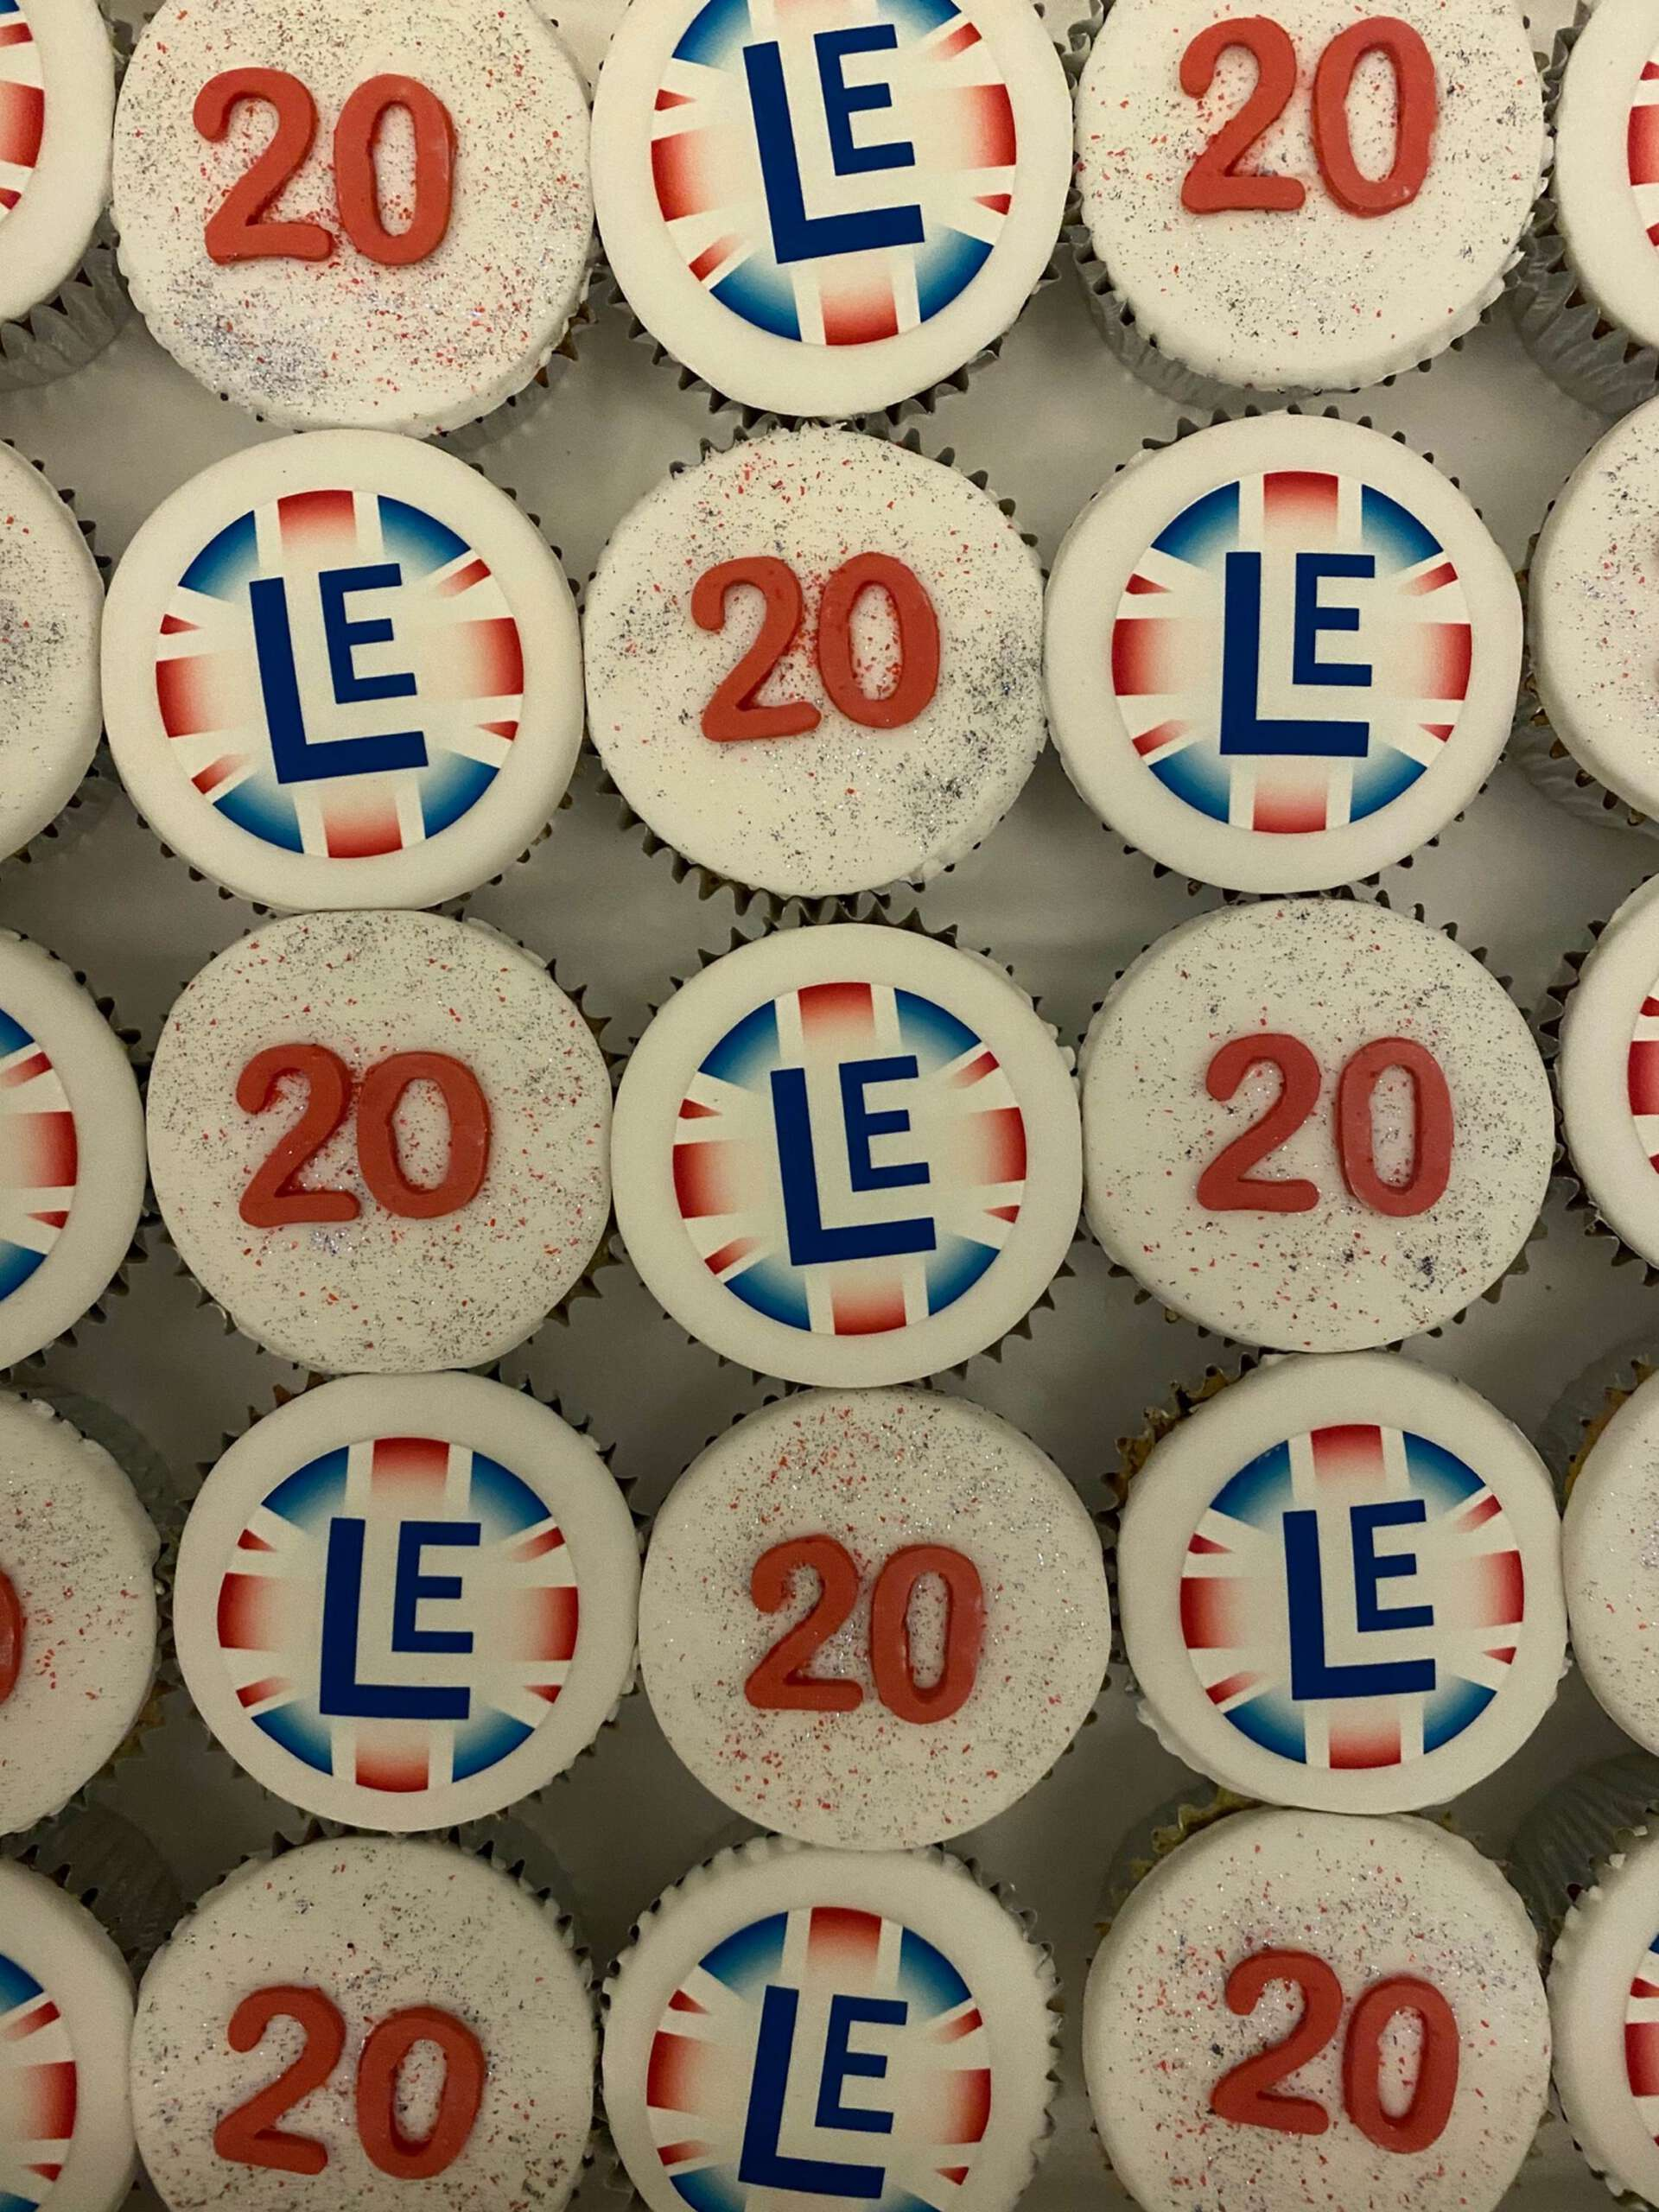 Langstone reaches 20 years and counting…